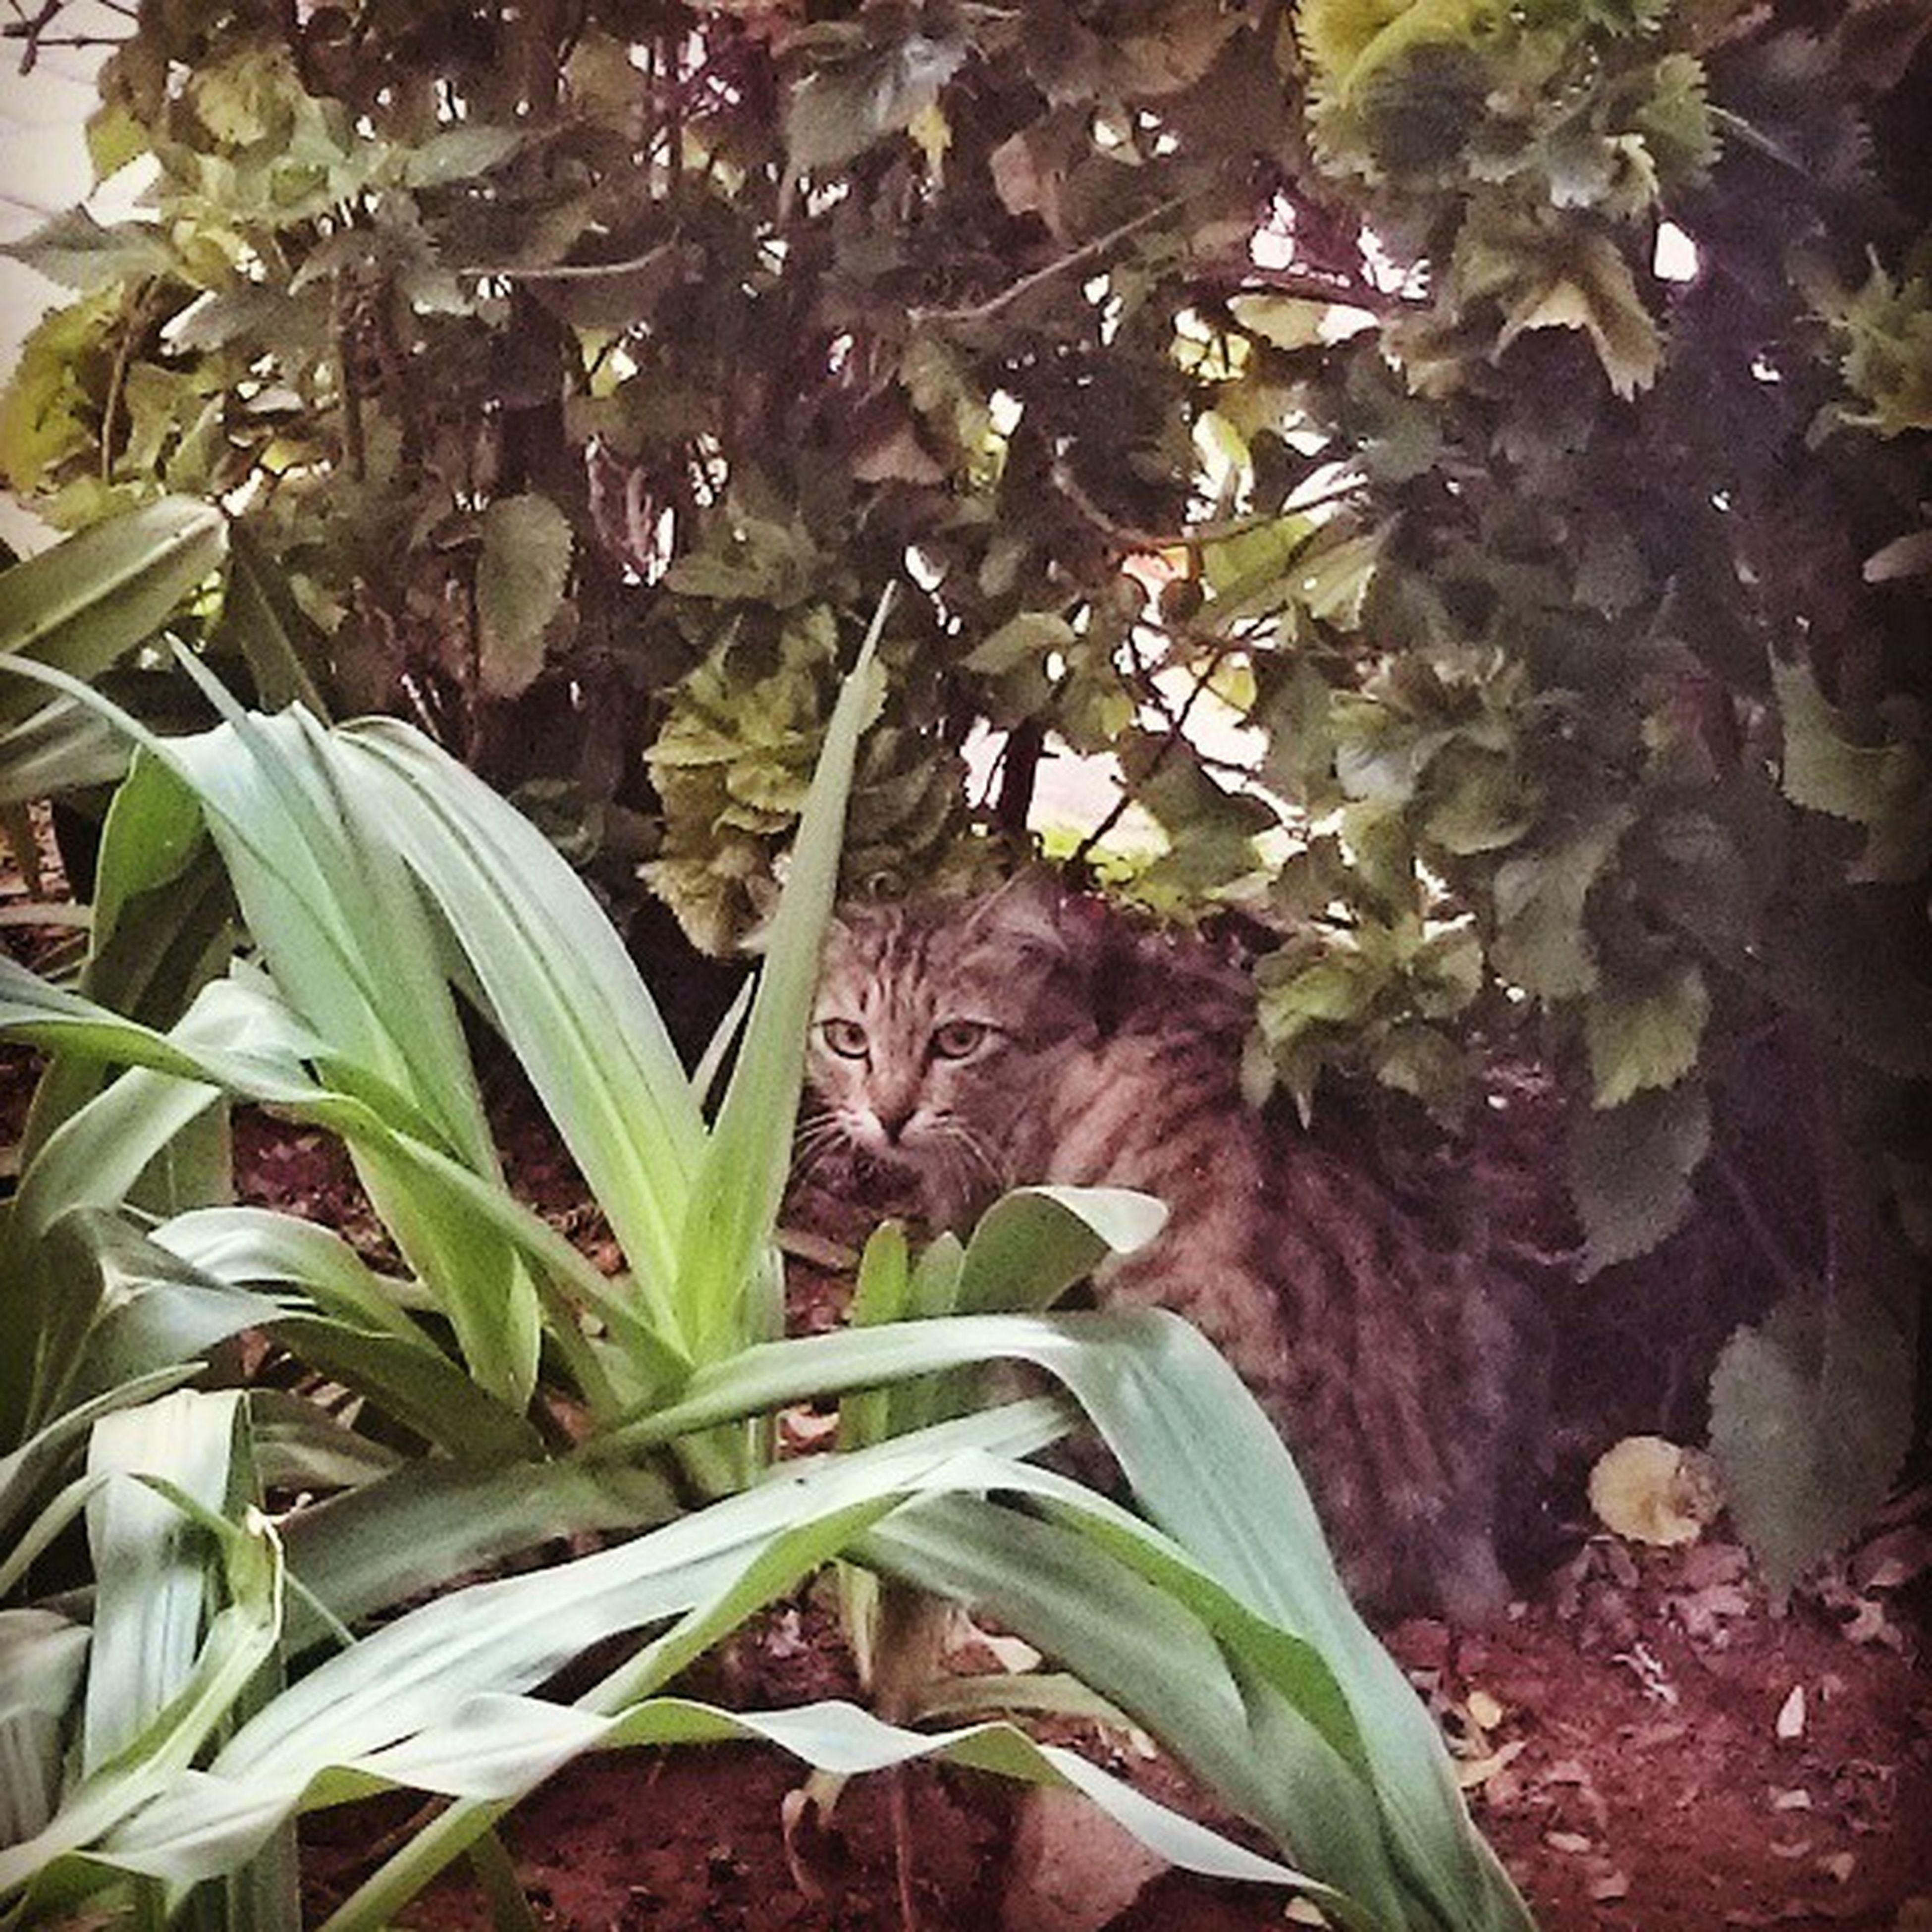 leaf, animal themes, one animal, plant, growth, green color, wildlife, mammal, nature, animals in the wild, domestic cat, pets, close-up, high angle view, day, no people, outdoors, leaves, cat, domestic animals